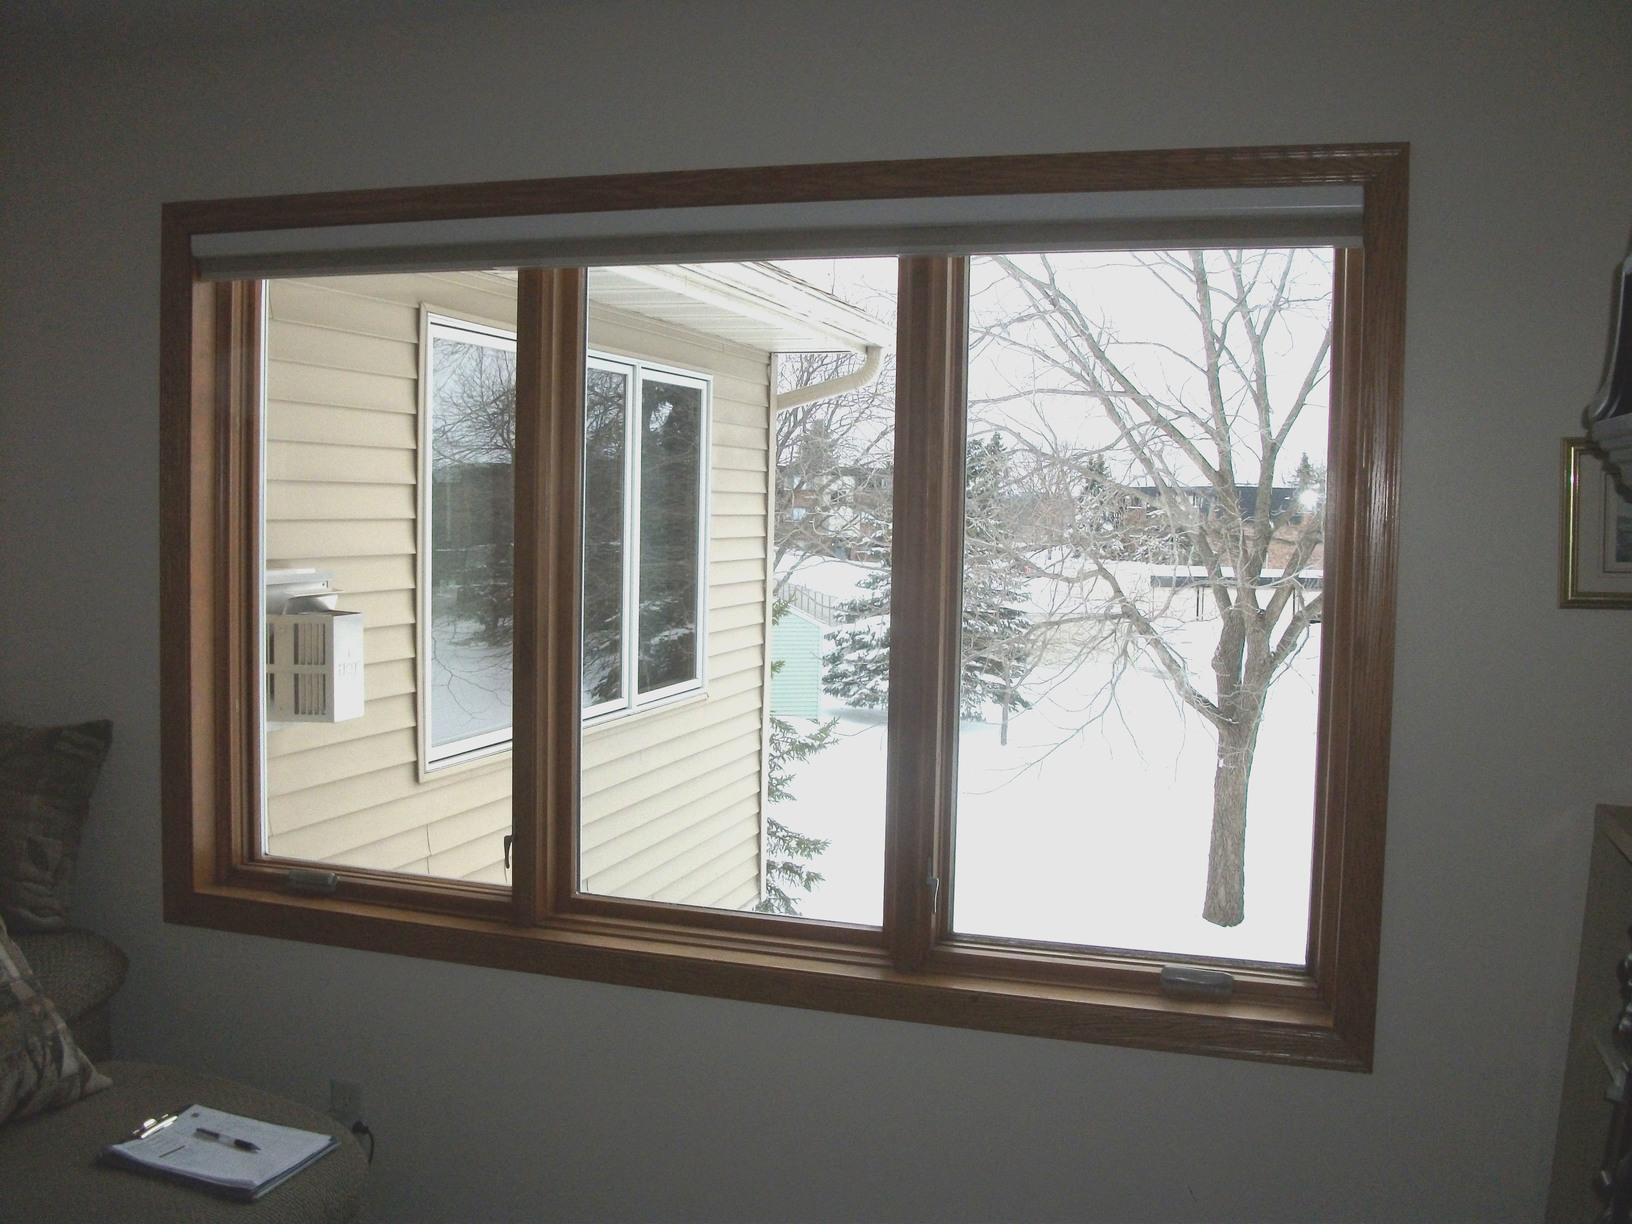 Replacement Windows in Northfield - Before Photo